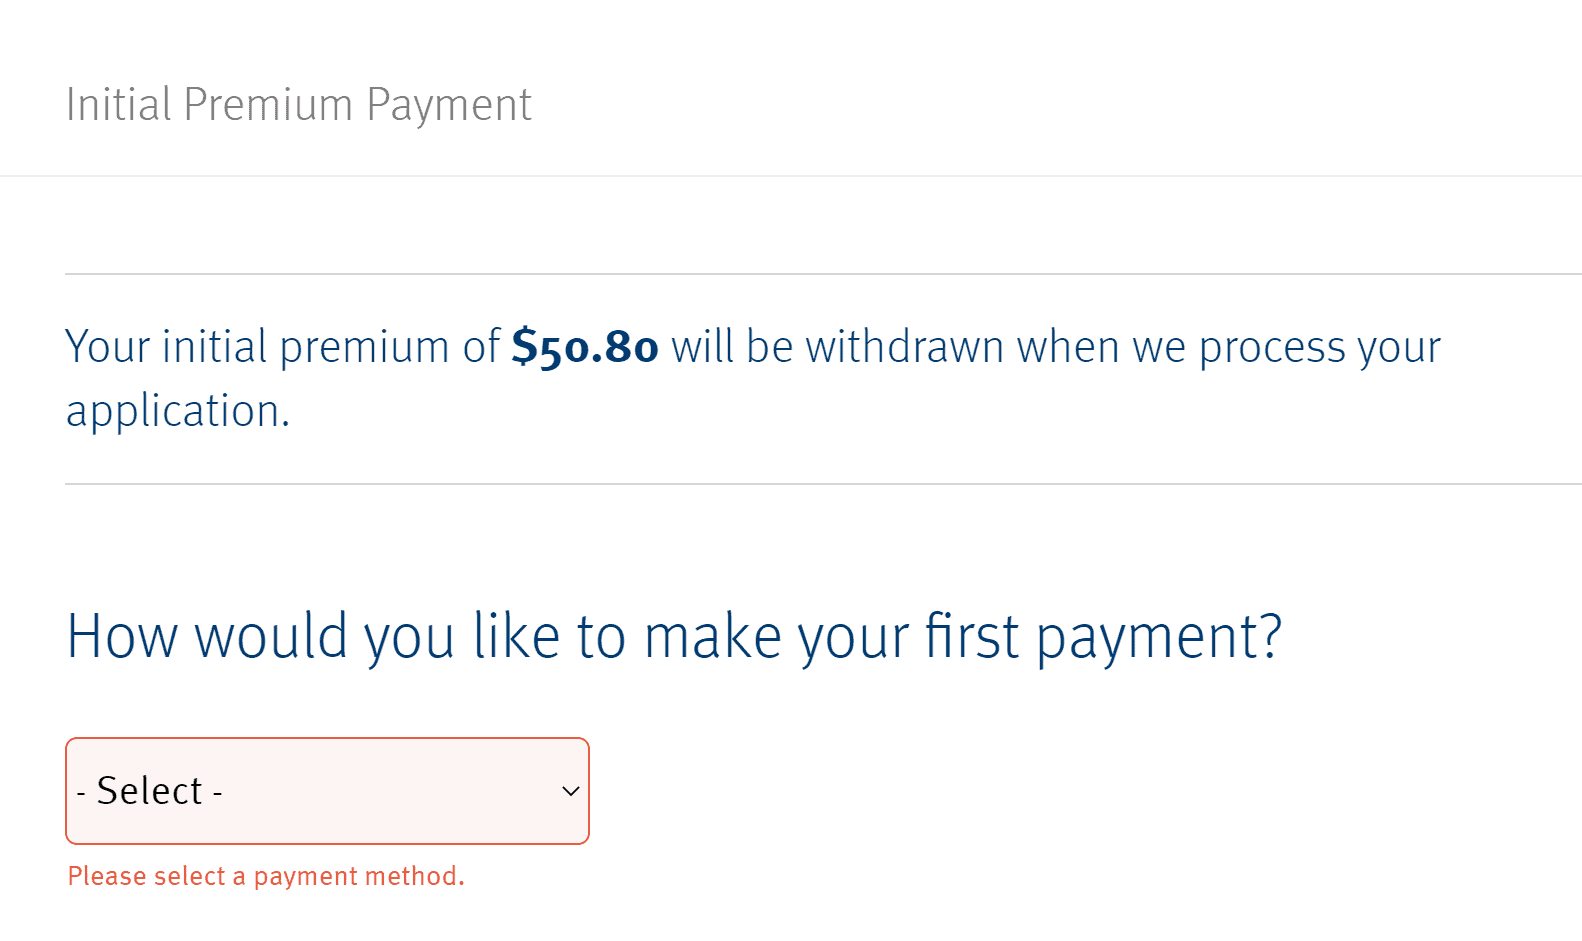 Enter a payment method for Mutual of Omaha Medigap plans